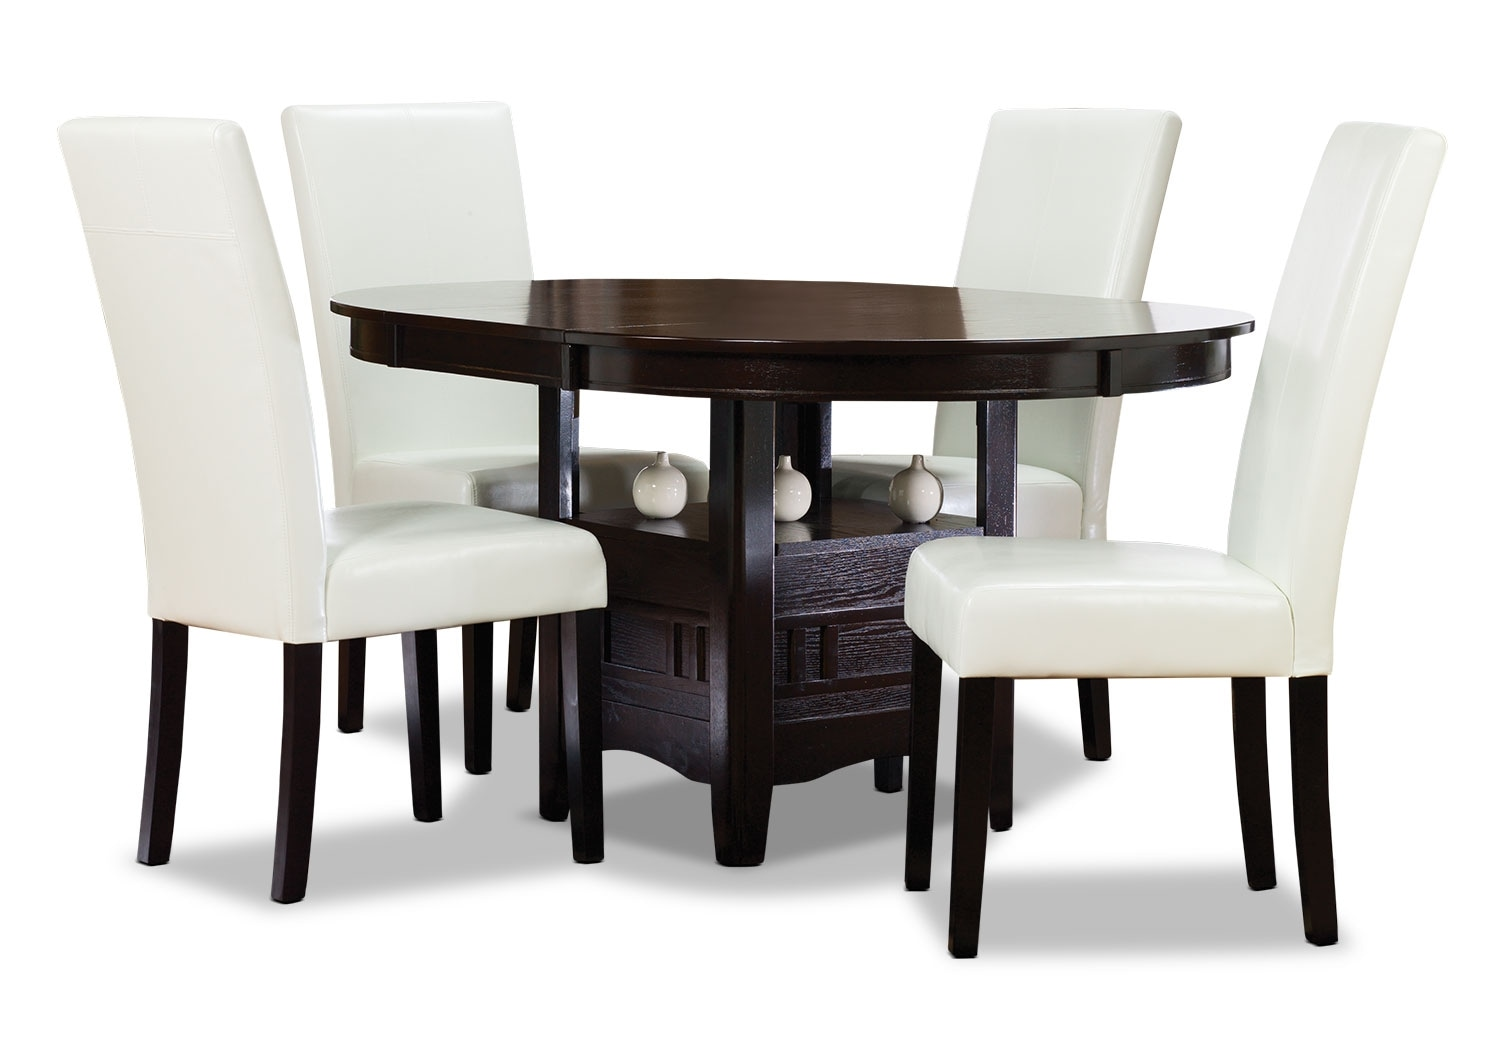 Dalton 5-Piece Chocolate Dining Package with White Chairs